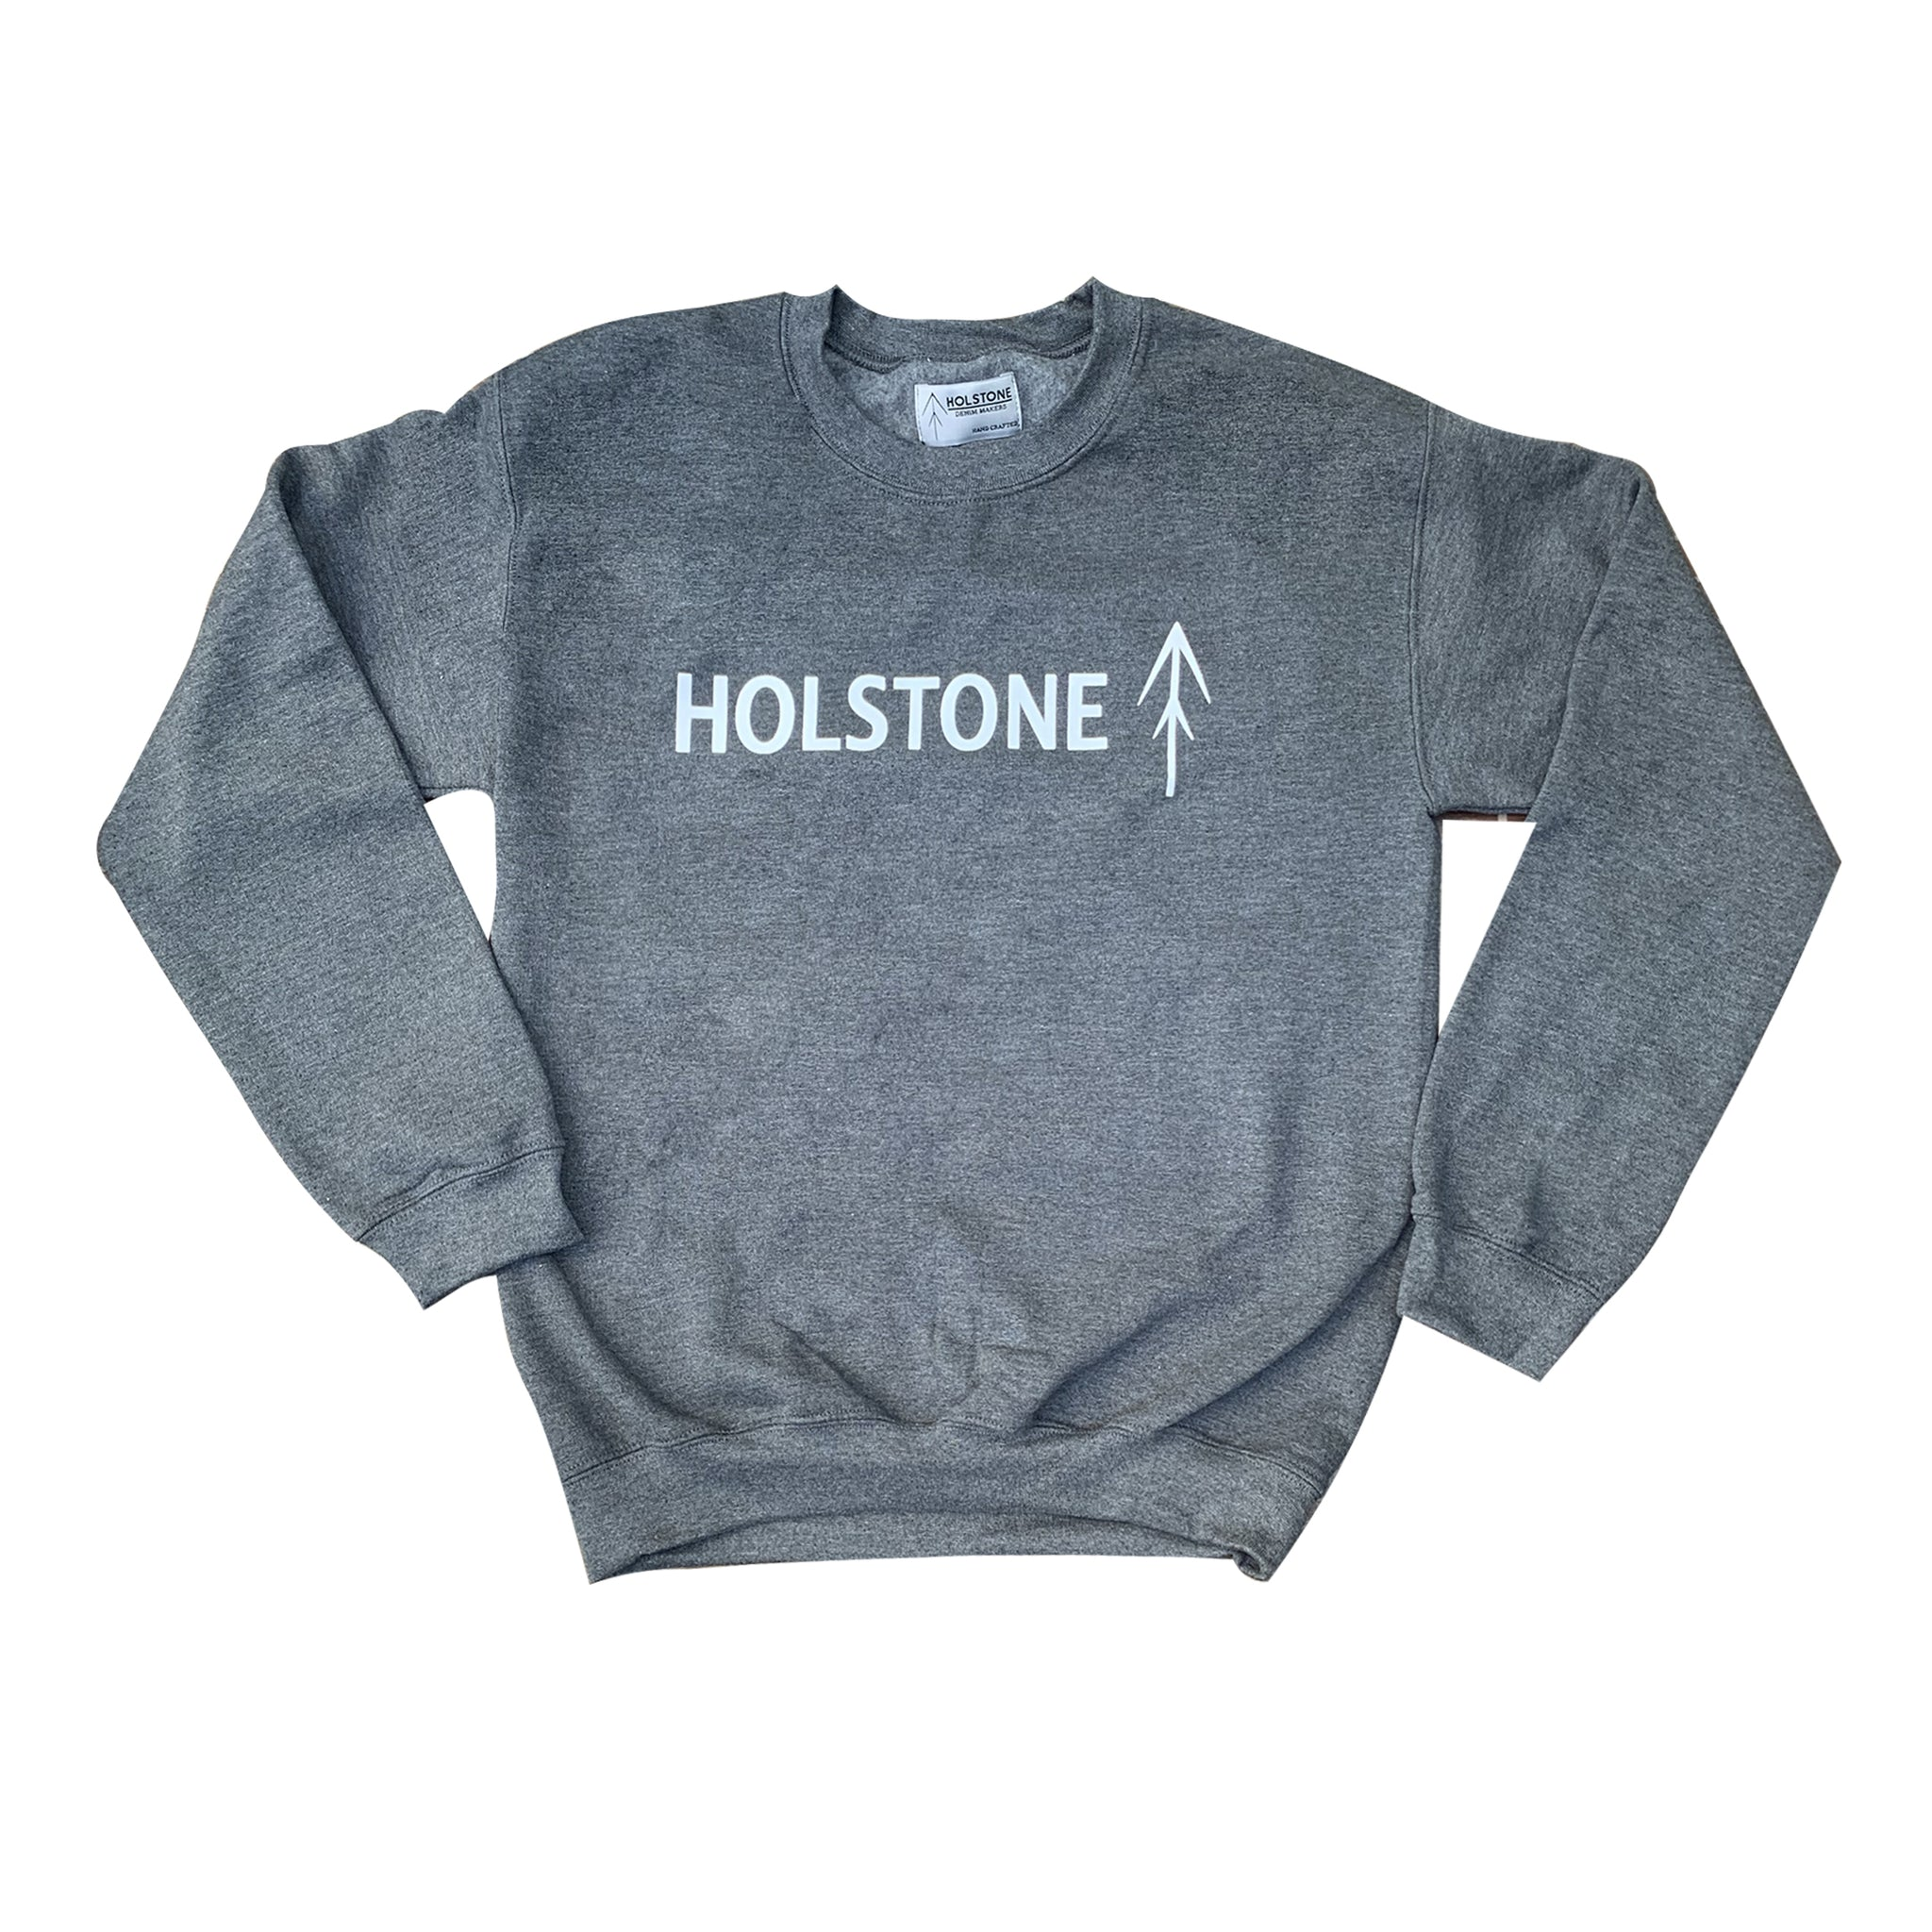 The Holstone Pullover Gris Obscuro